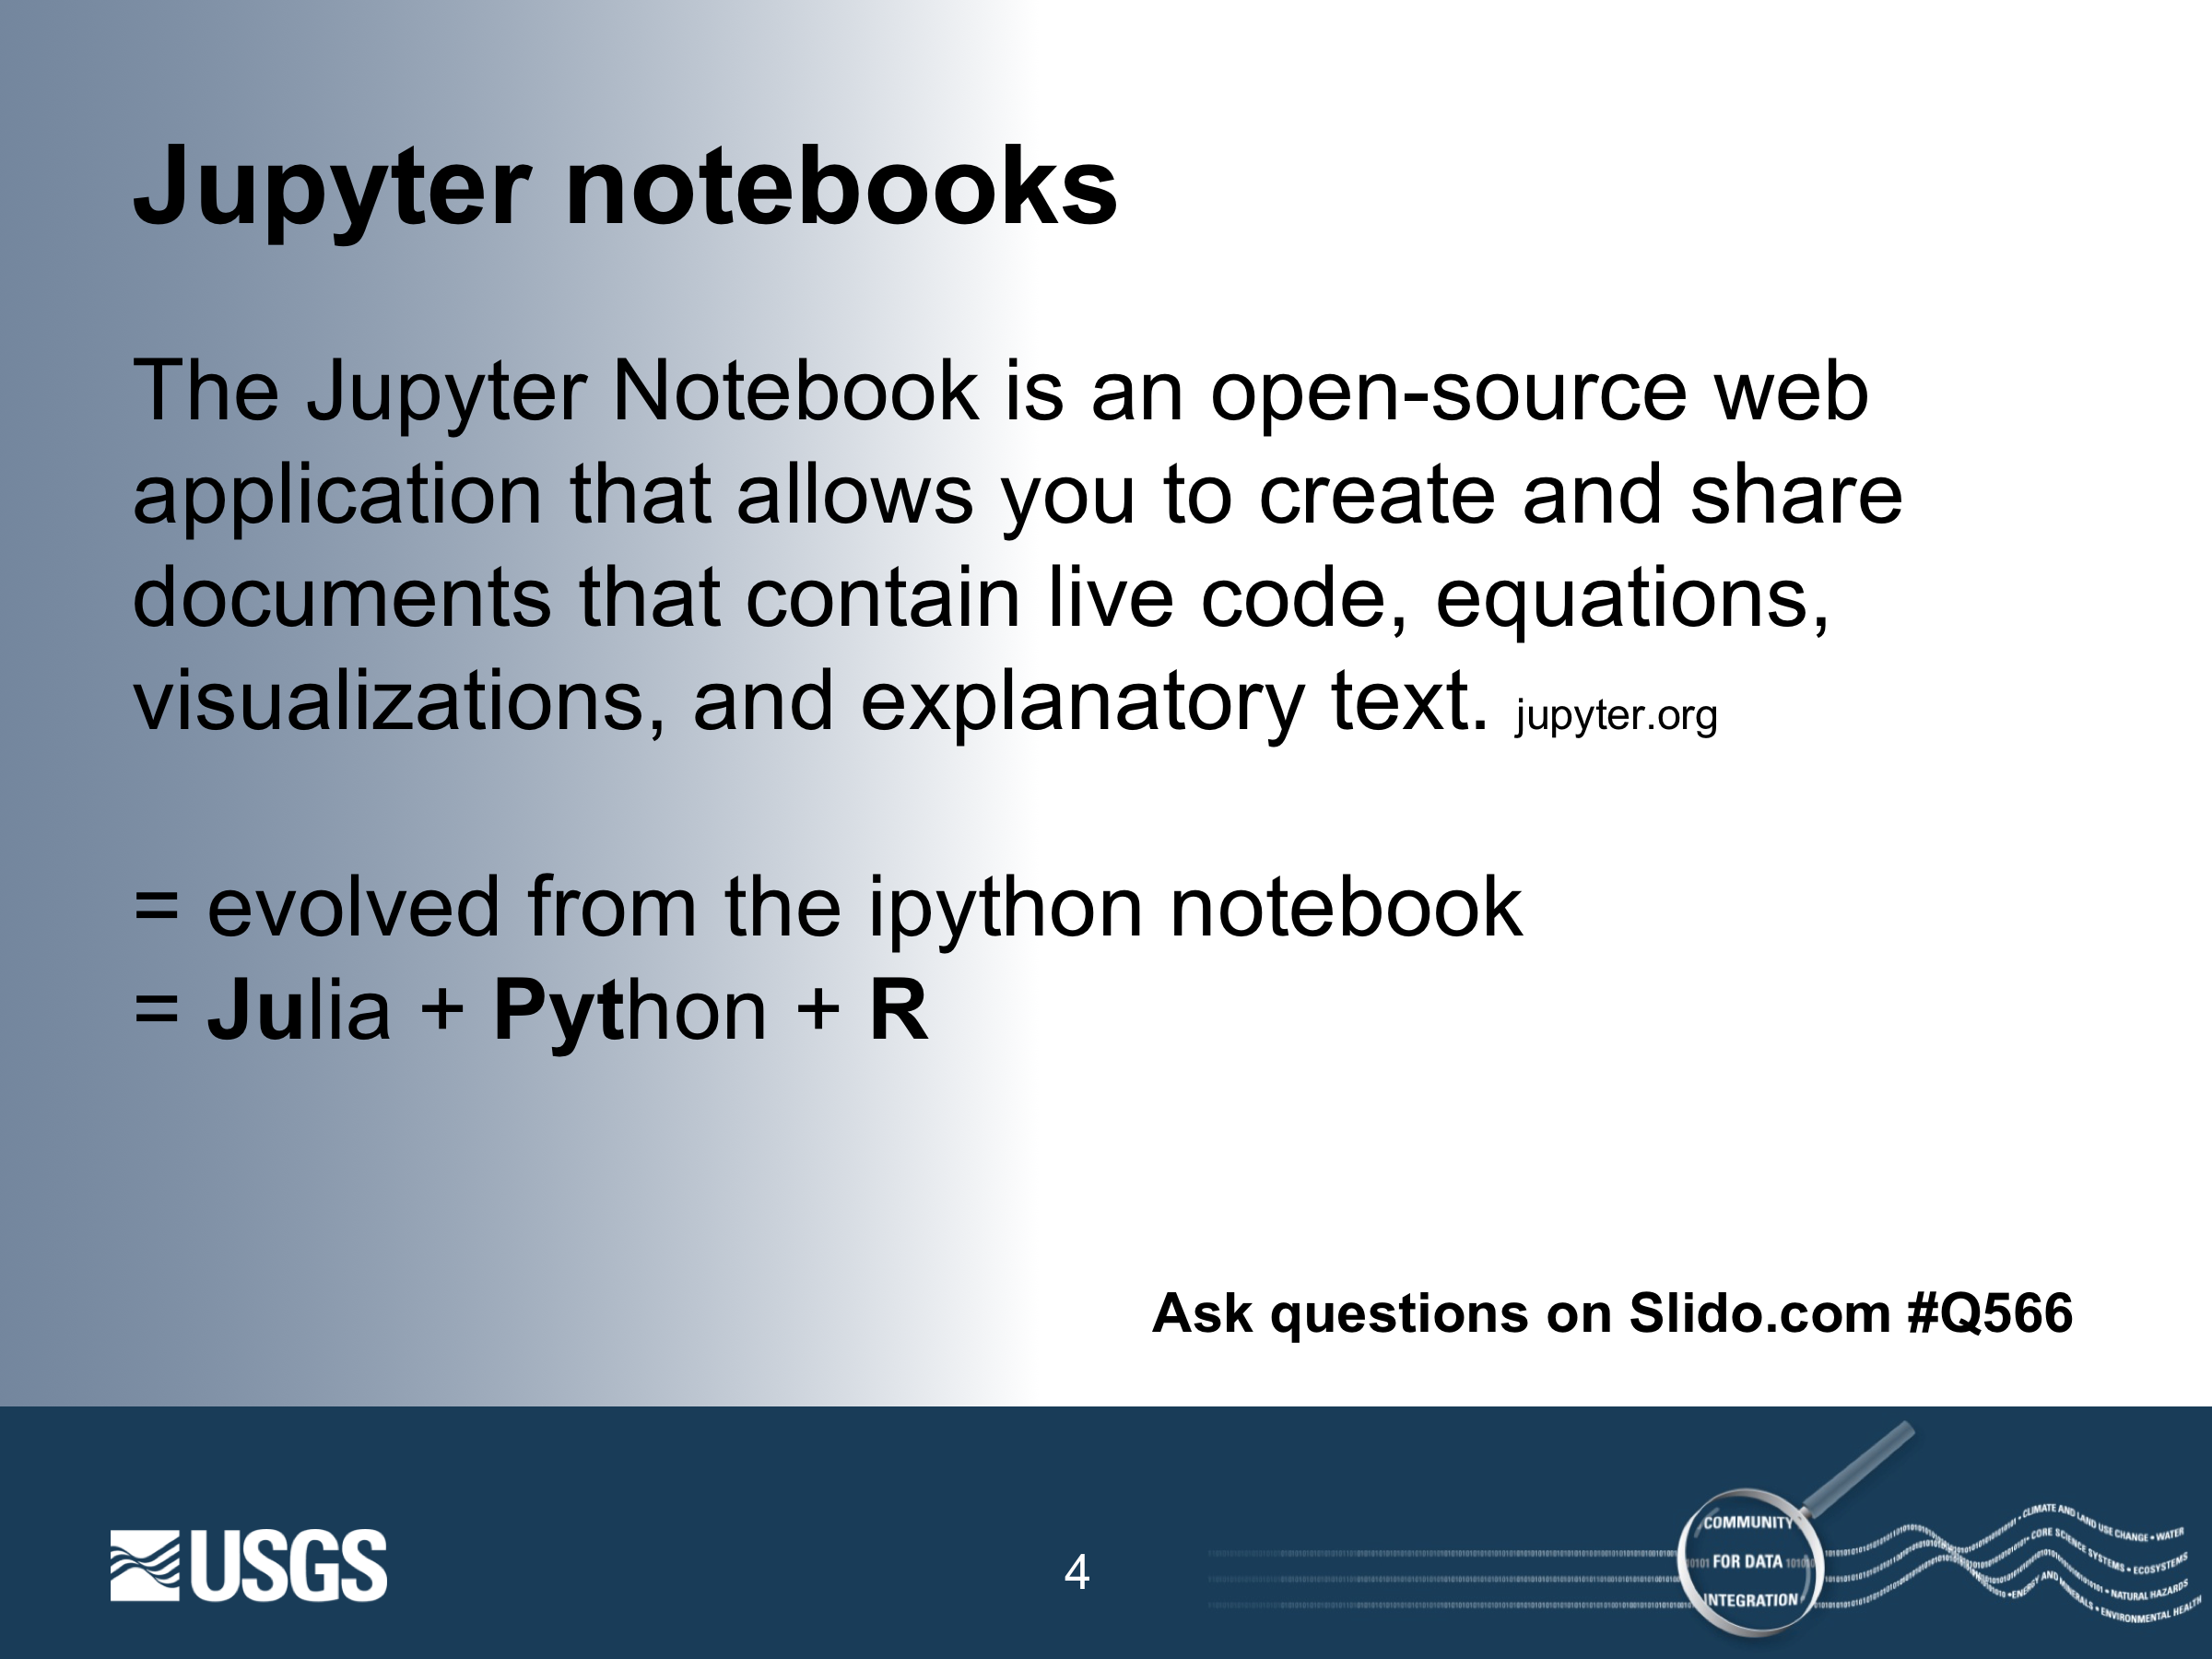 Scientist's Challenge 170913: Getting started with Jupyter